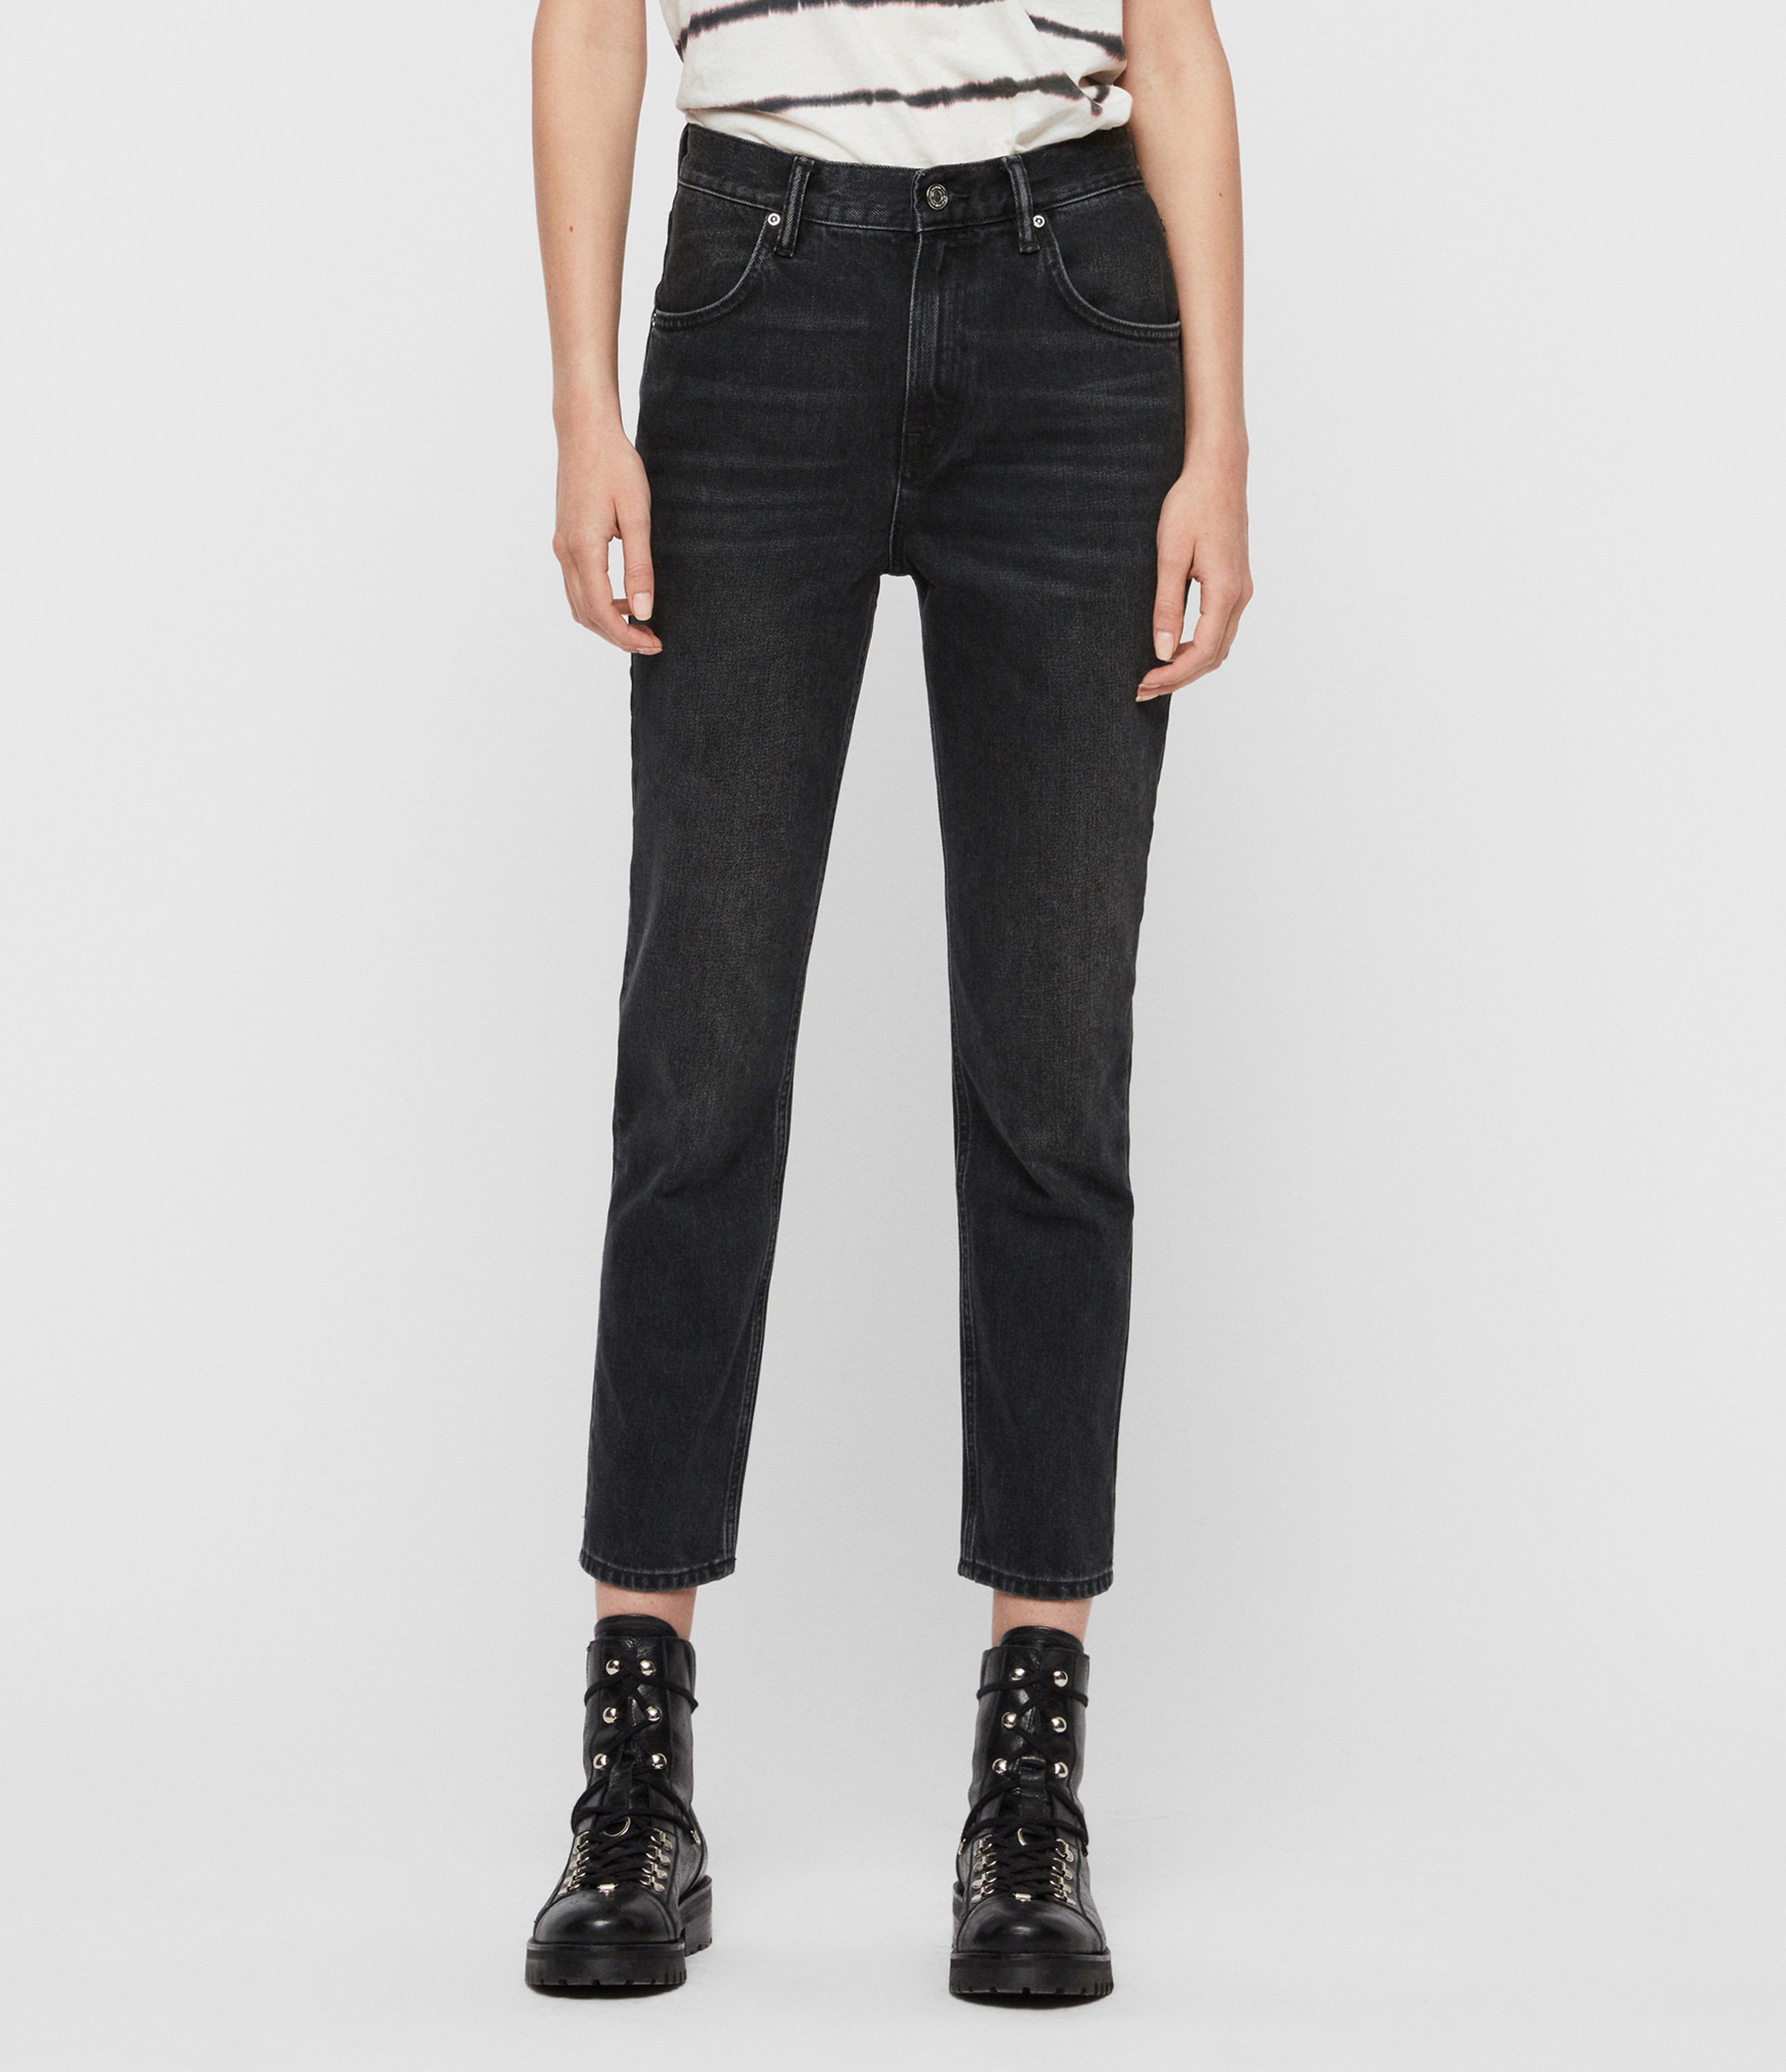 AllSaints Brooke High-Rise Straight Jeans, Washed Black